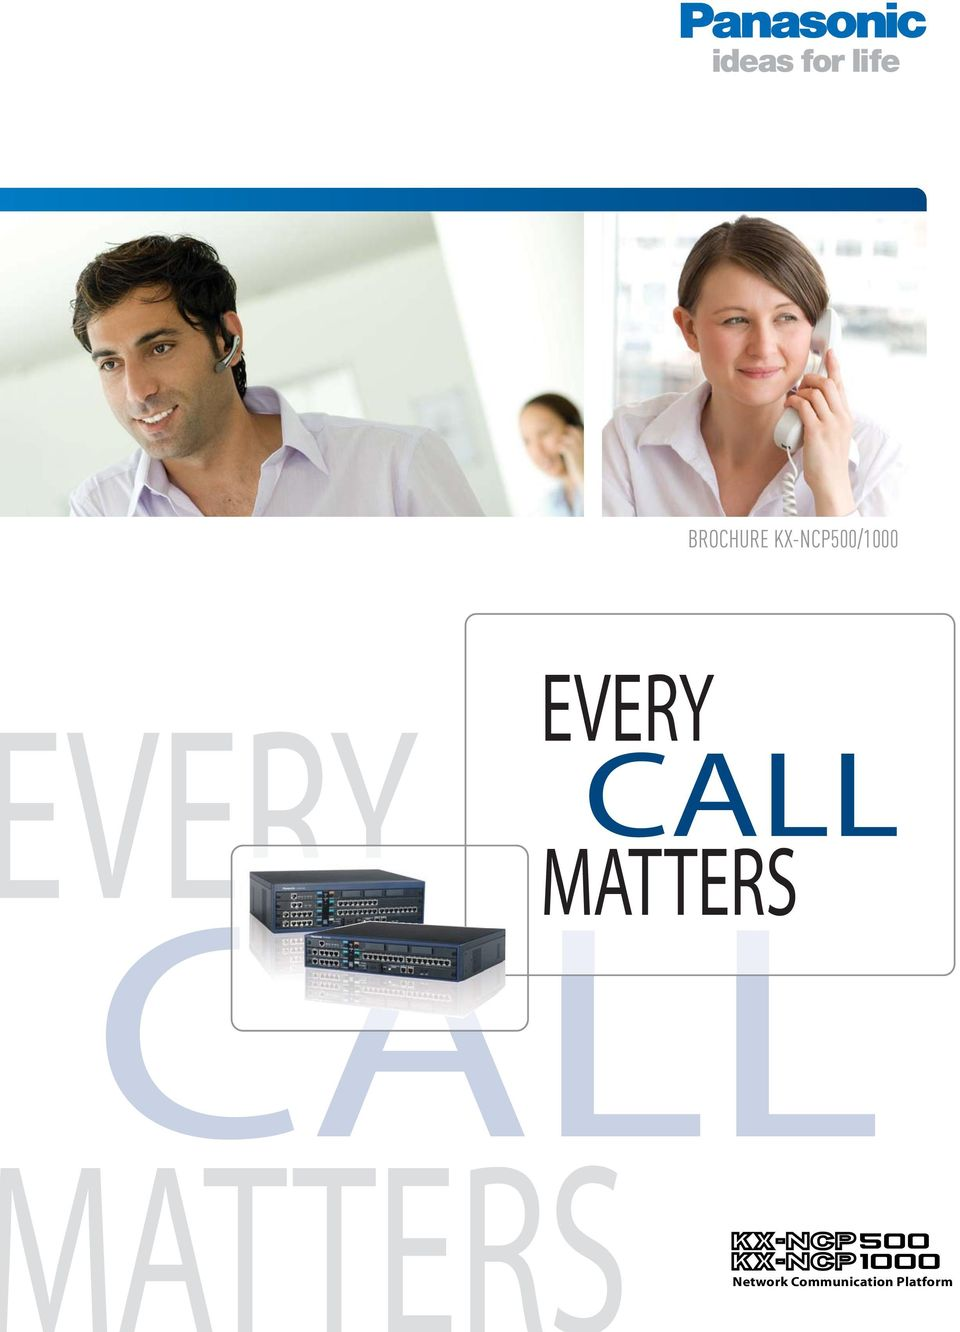 VERY CALL MATTERS A